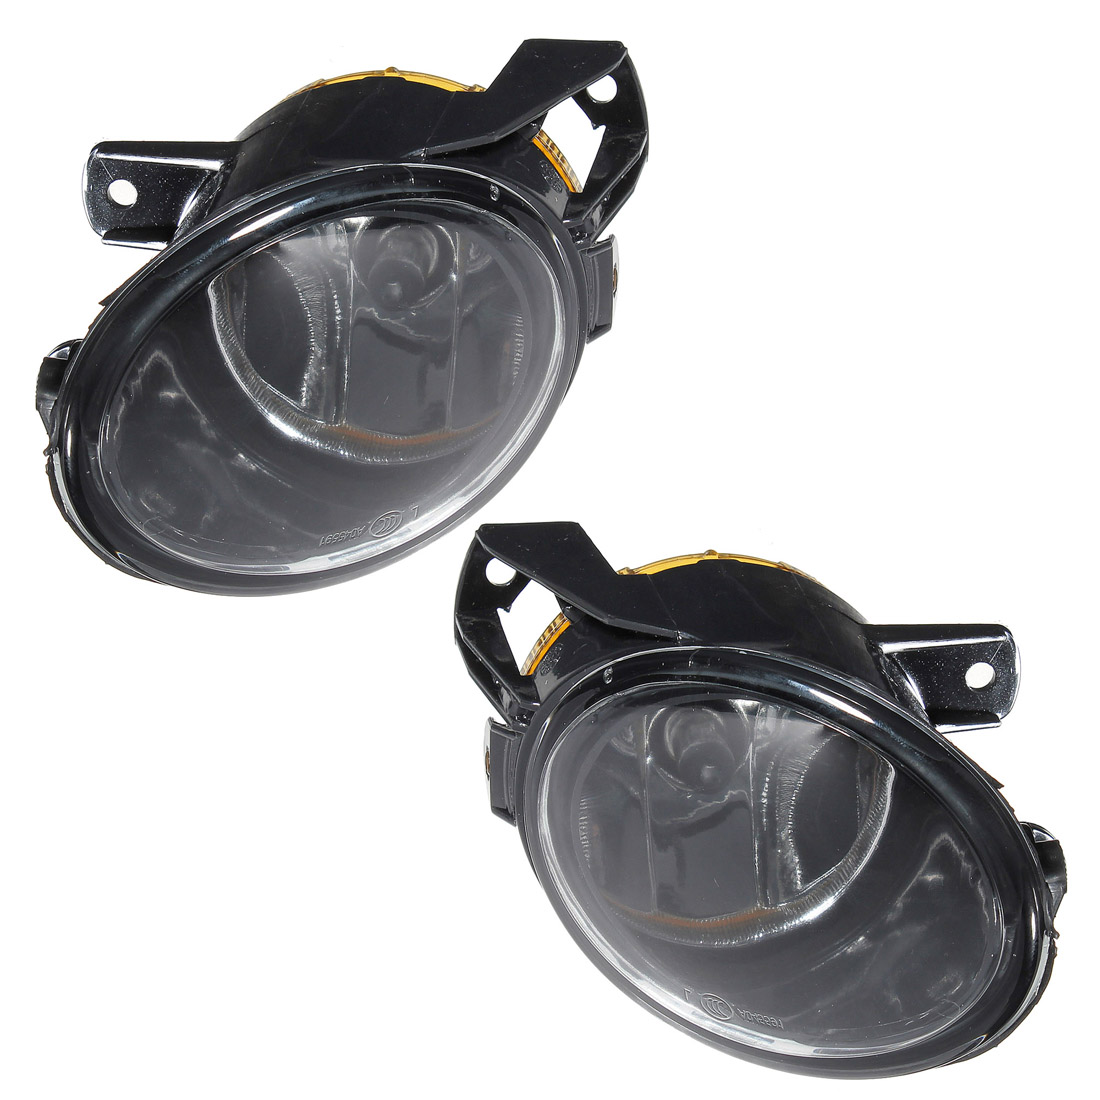 1Pcs Left And Right Hand LH Driving Fog Lamp Fog Light For VW 2006-2009 Passat B6 3C Sedan Wagon Variant